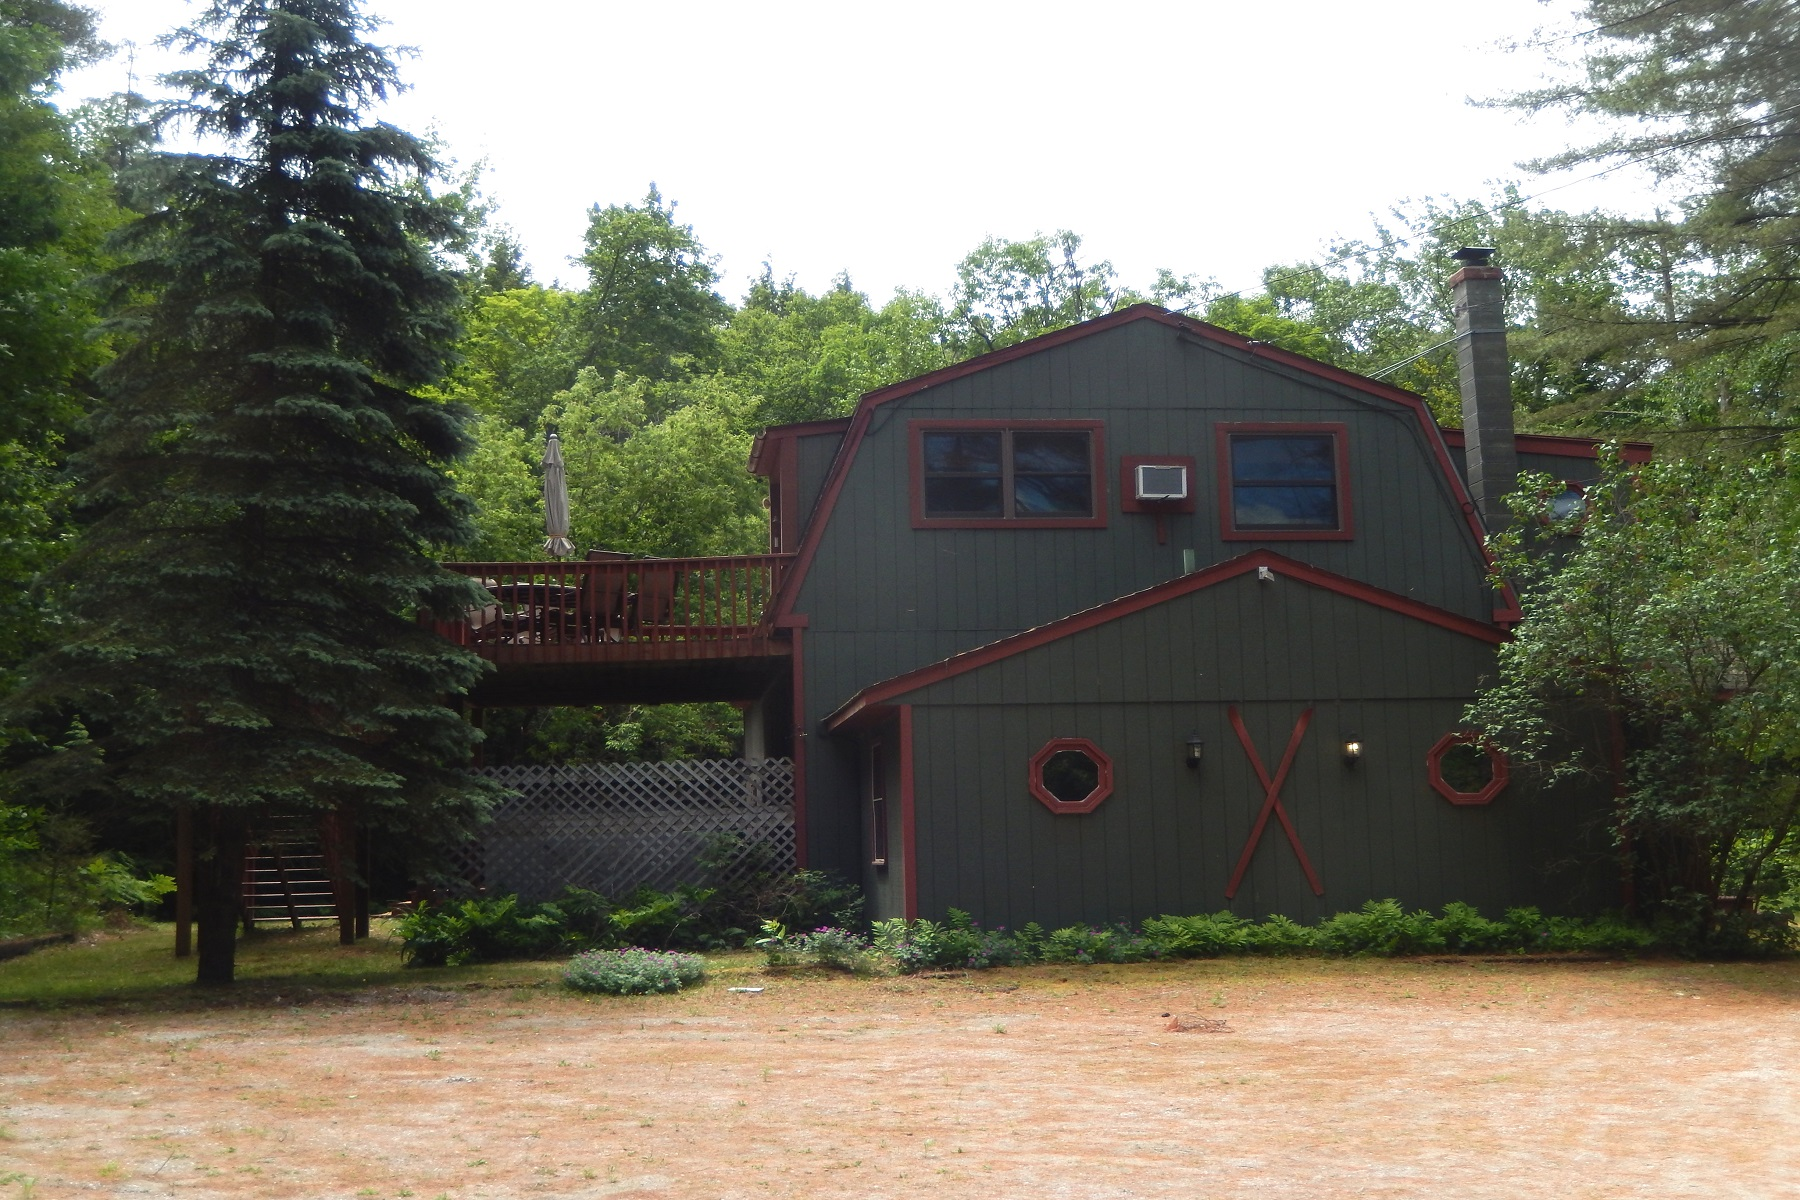 Single Family Home for Sale at Spacious - Affordable - Versatile 1810 Route 103 Cavendish, Vermont, 05142 United States